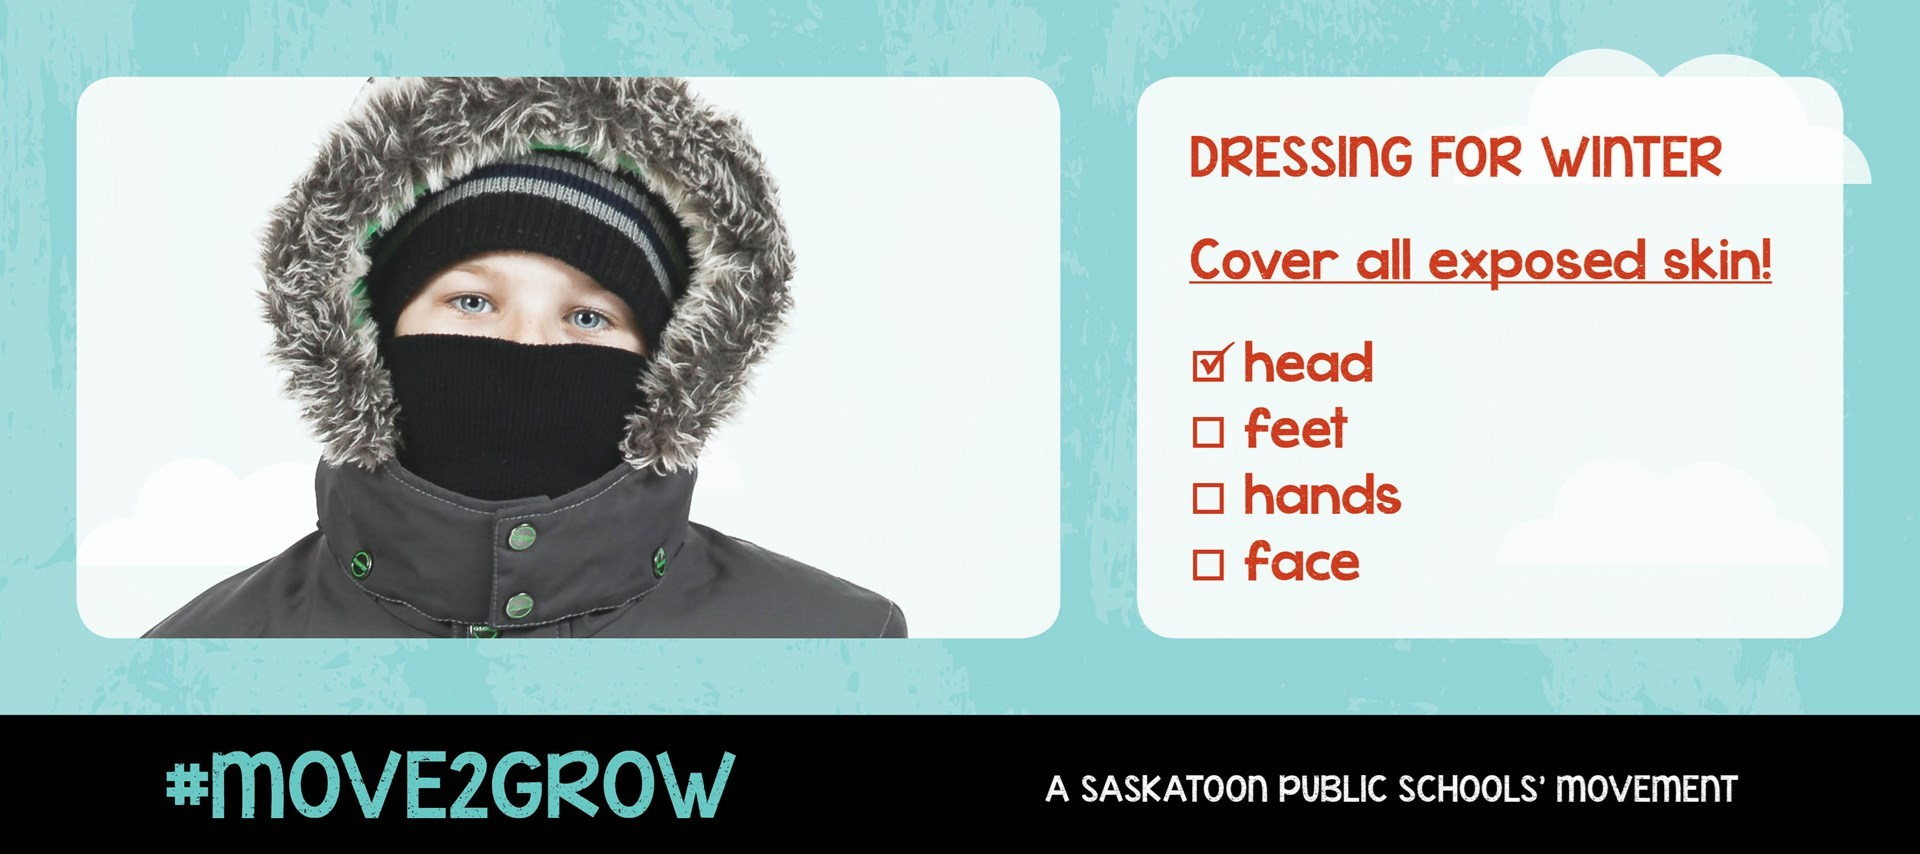 Proper dress encourages students to be winter active